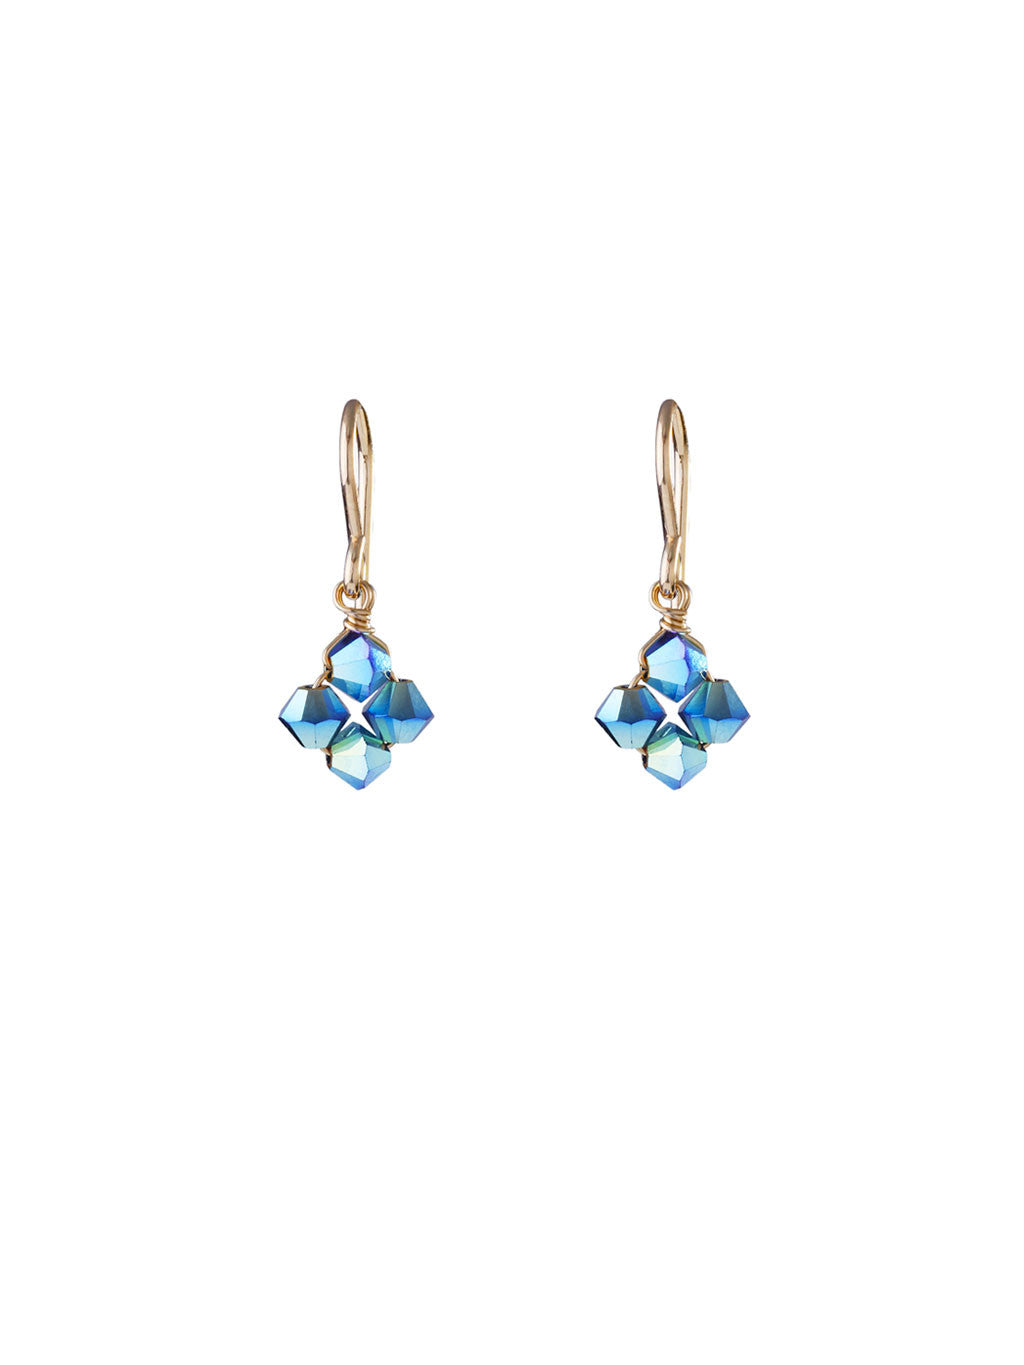 Crystal Diamond Clover Earrings - Peacock